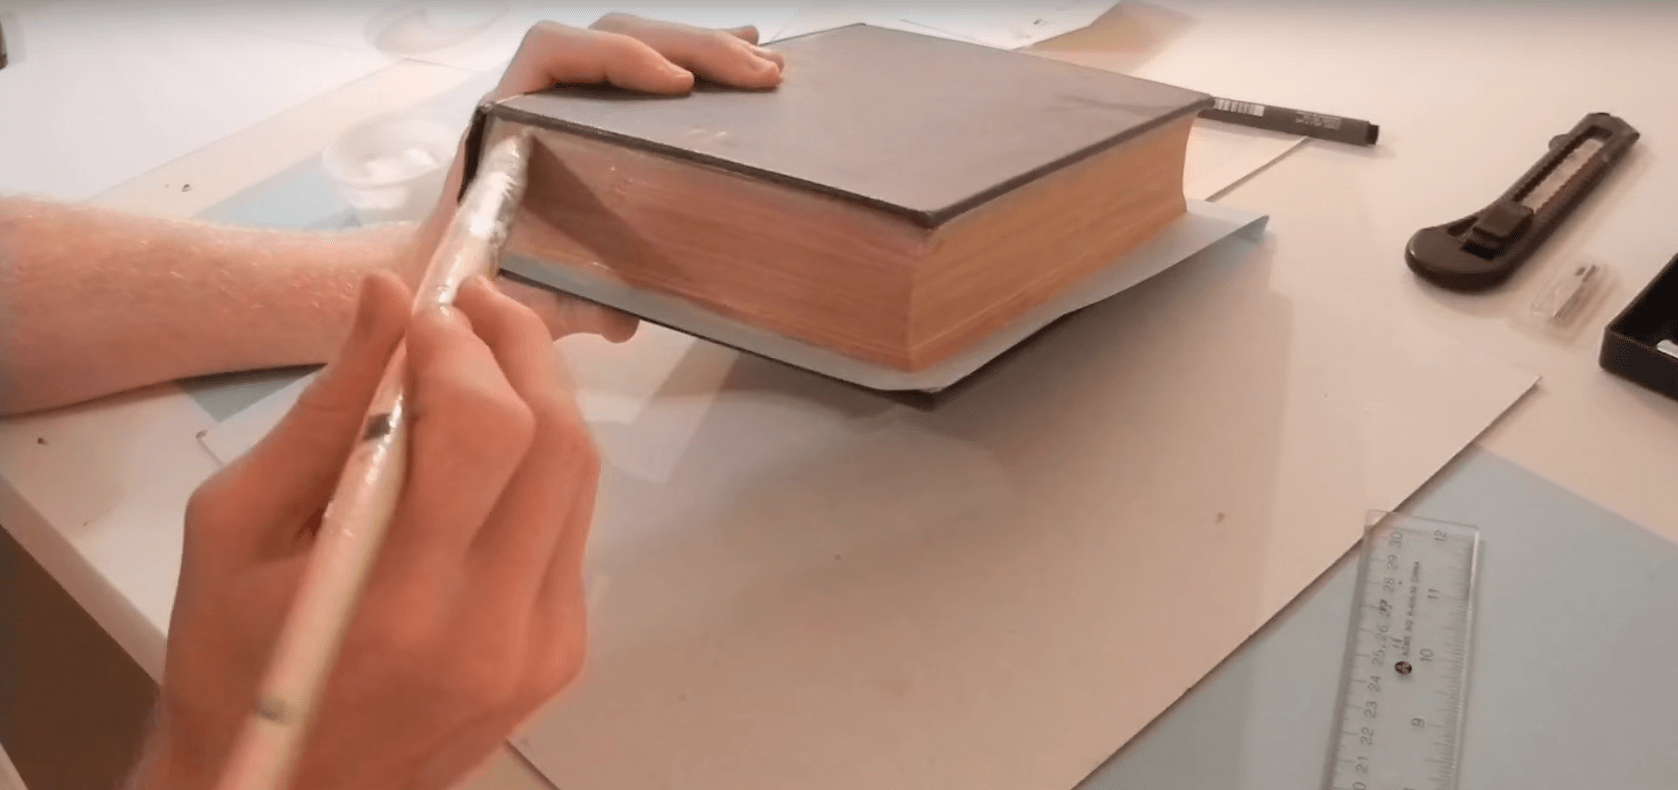 Step 1 - How To Make a Book Stash Box